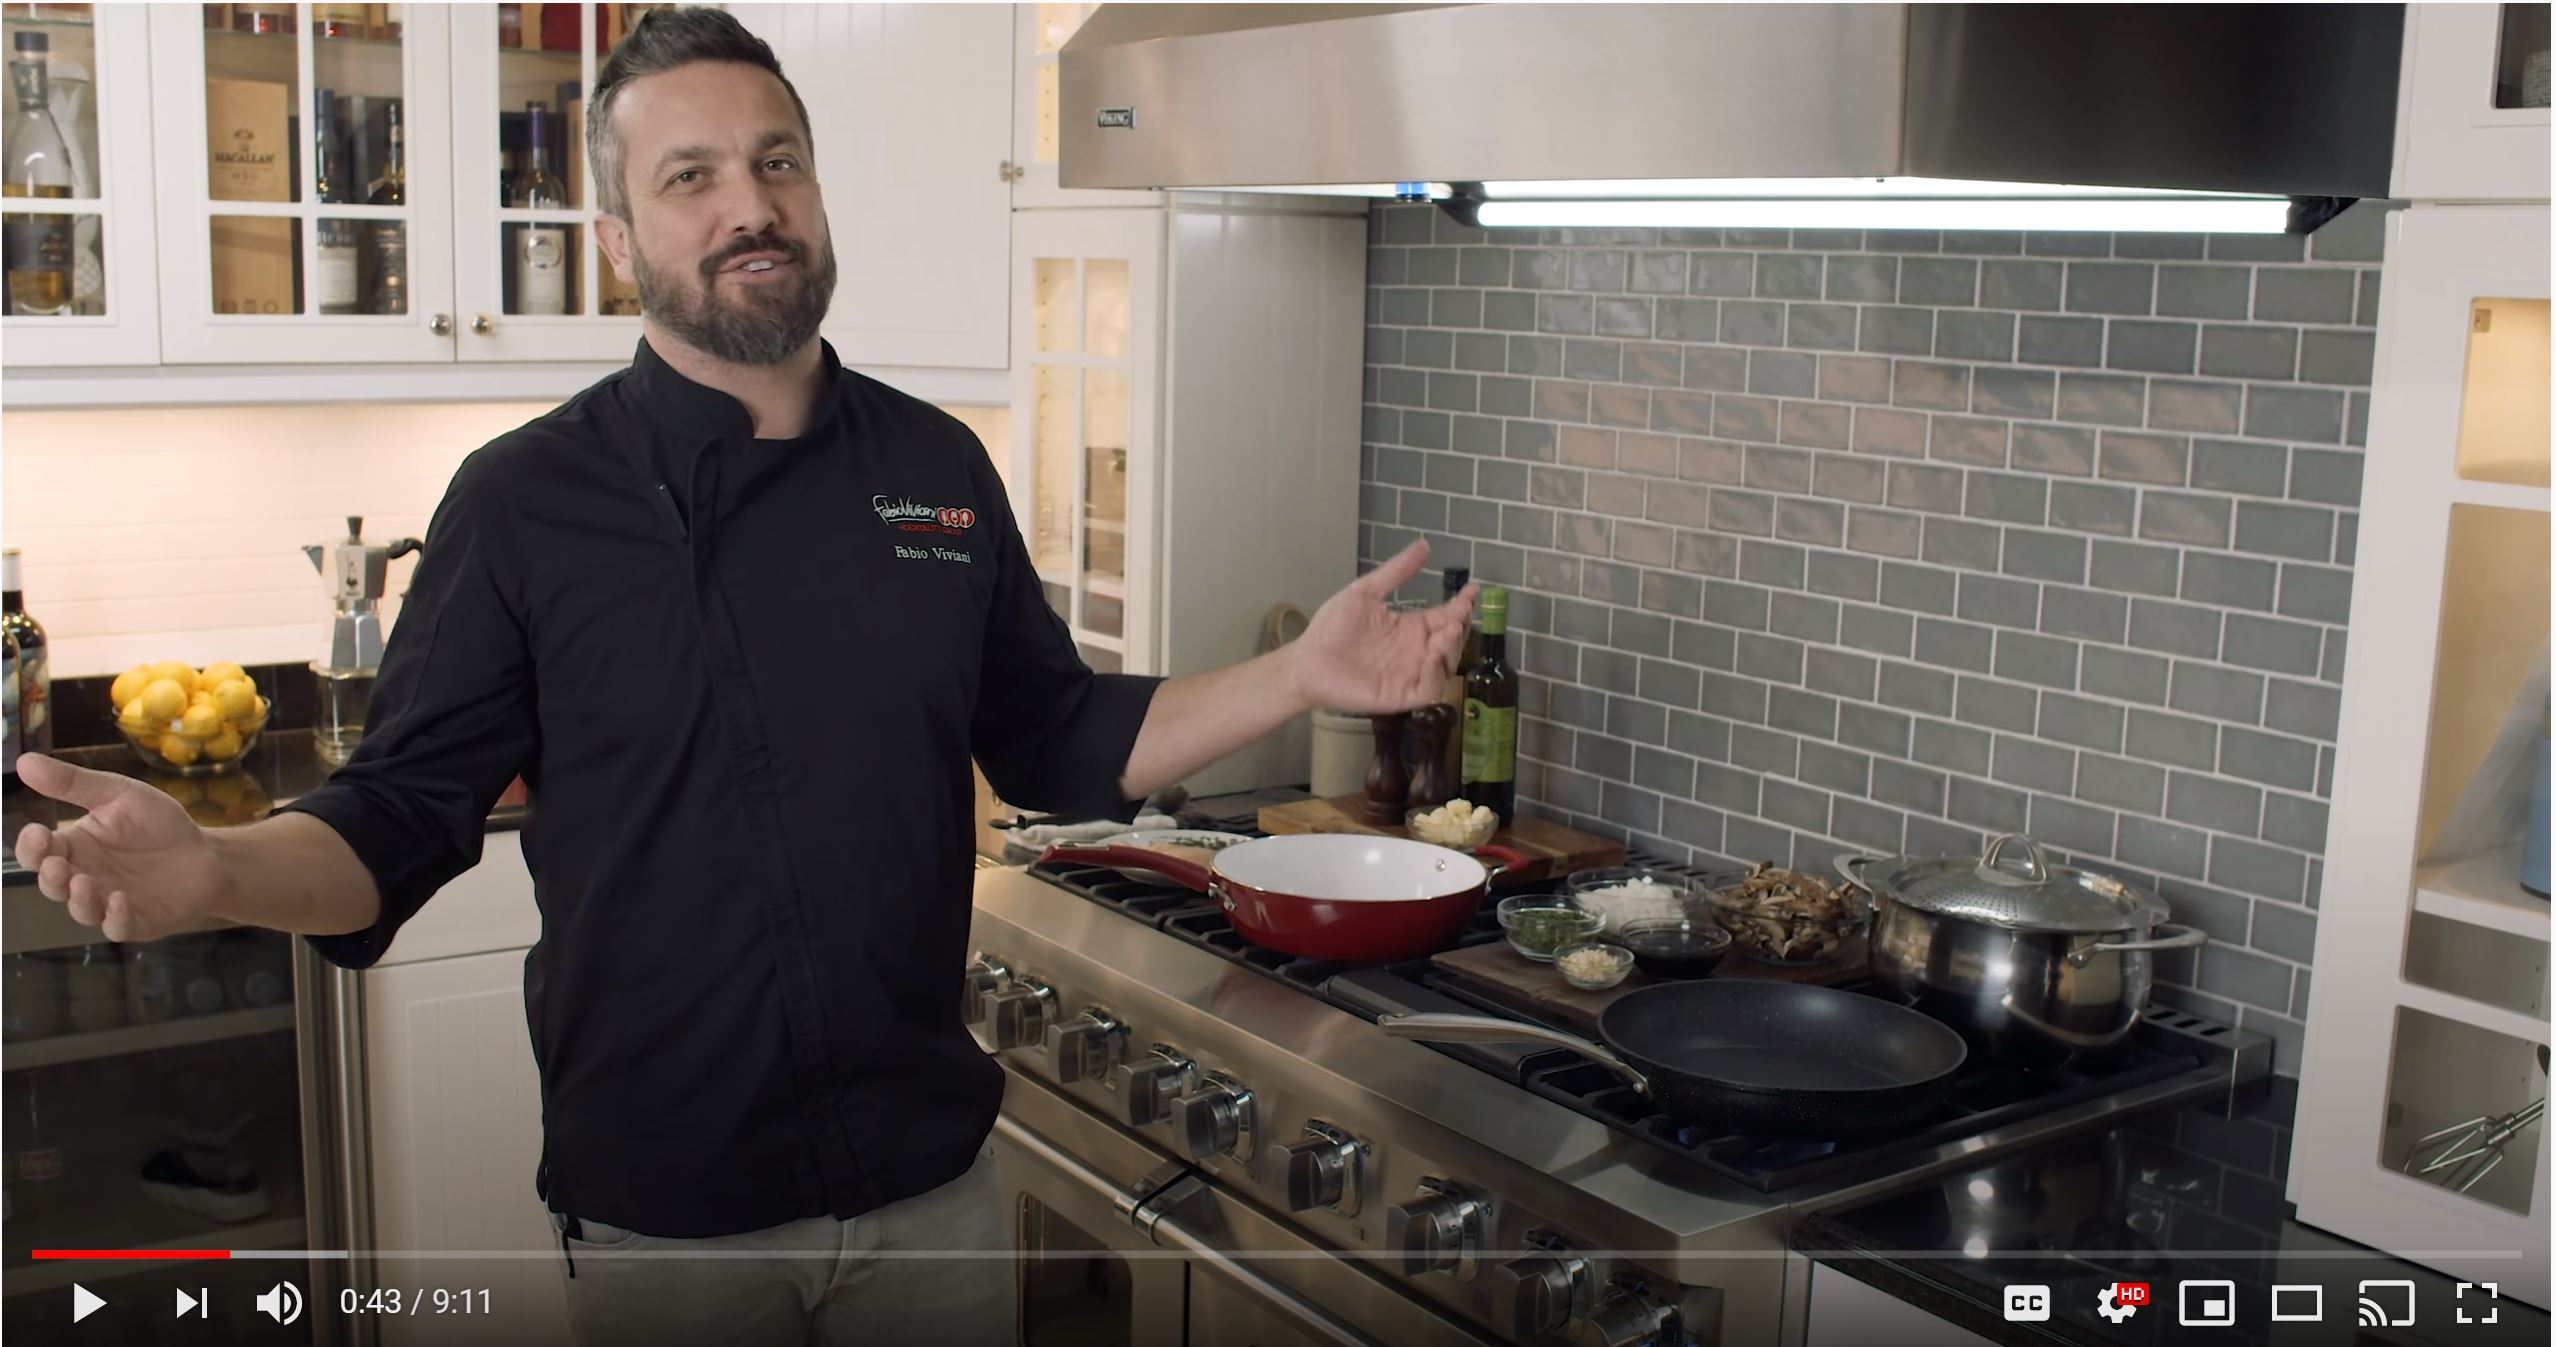 Celebrity Chefs - Who knew cooking at home could be so much fun!